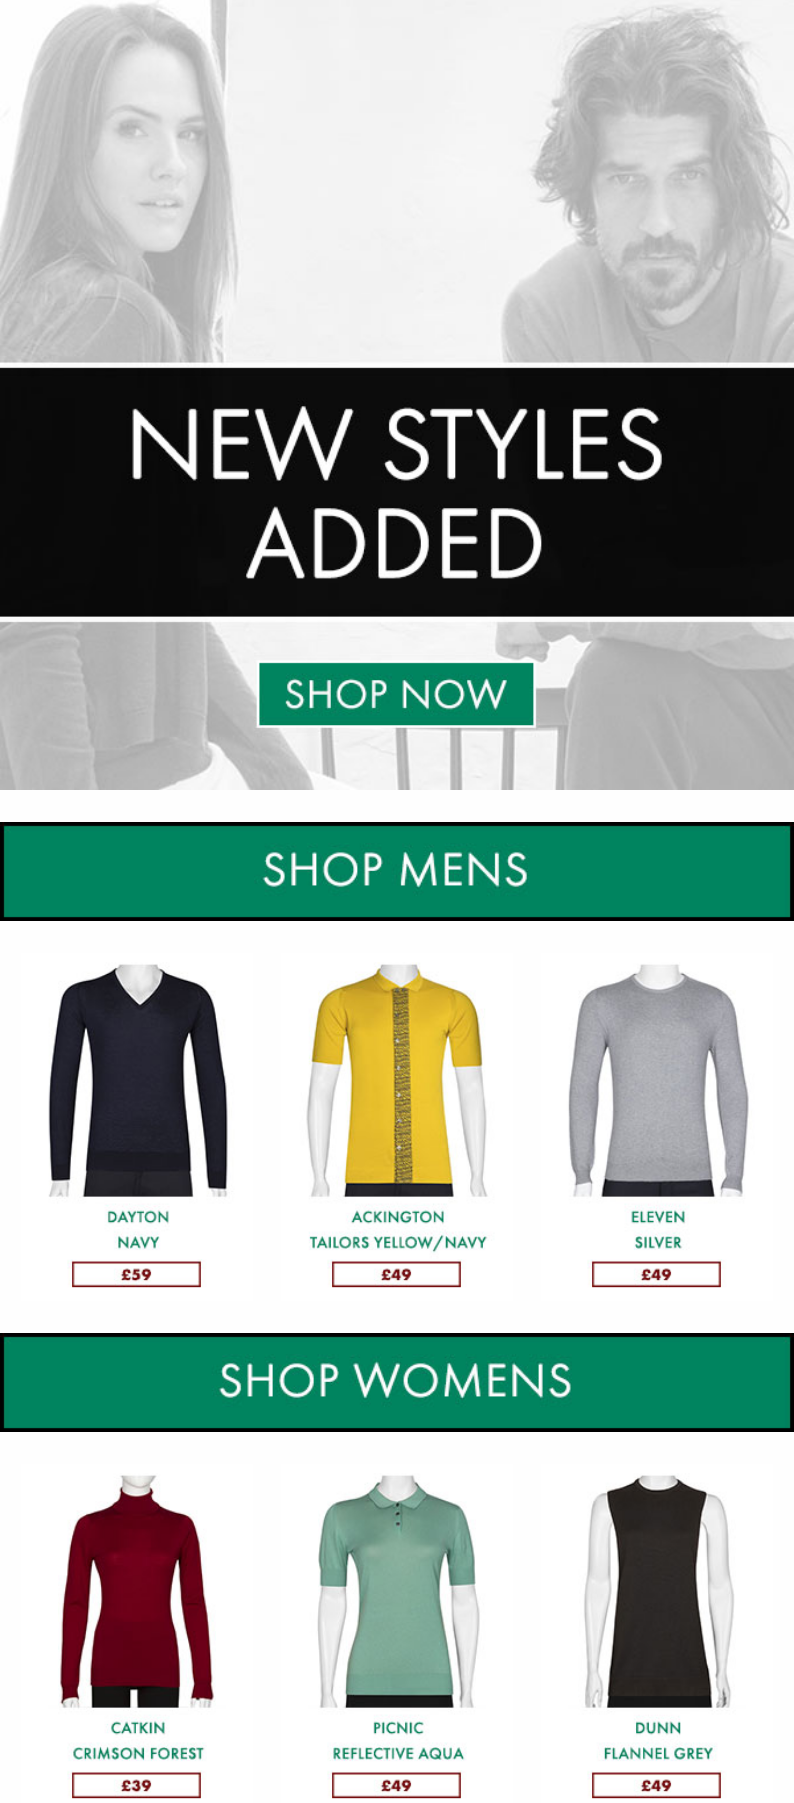 Get your new style in the fashion from the latest and greatest items. Go and enjoy yourself.